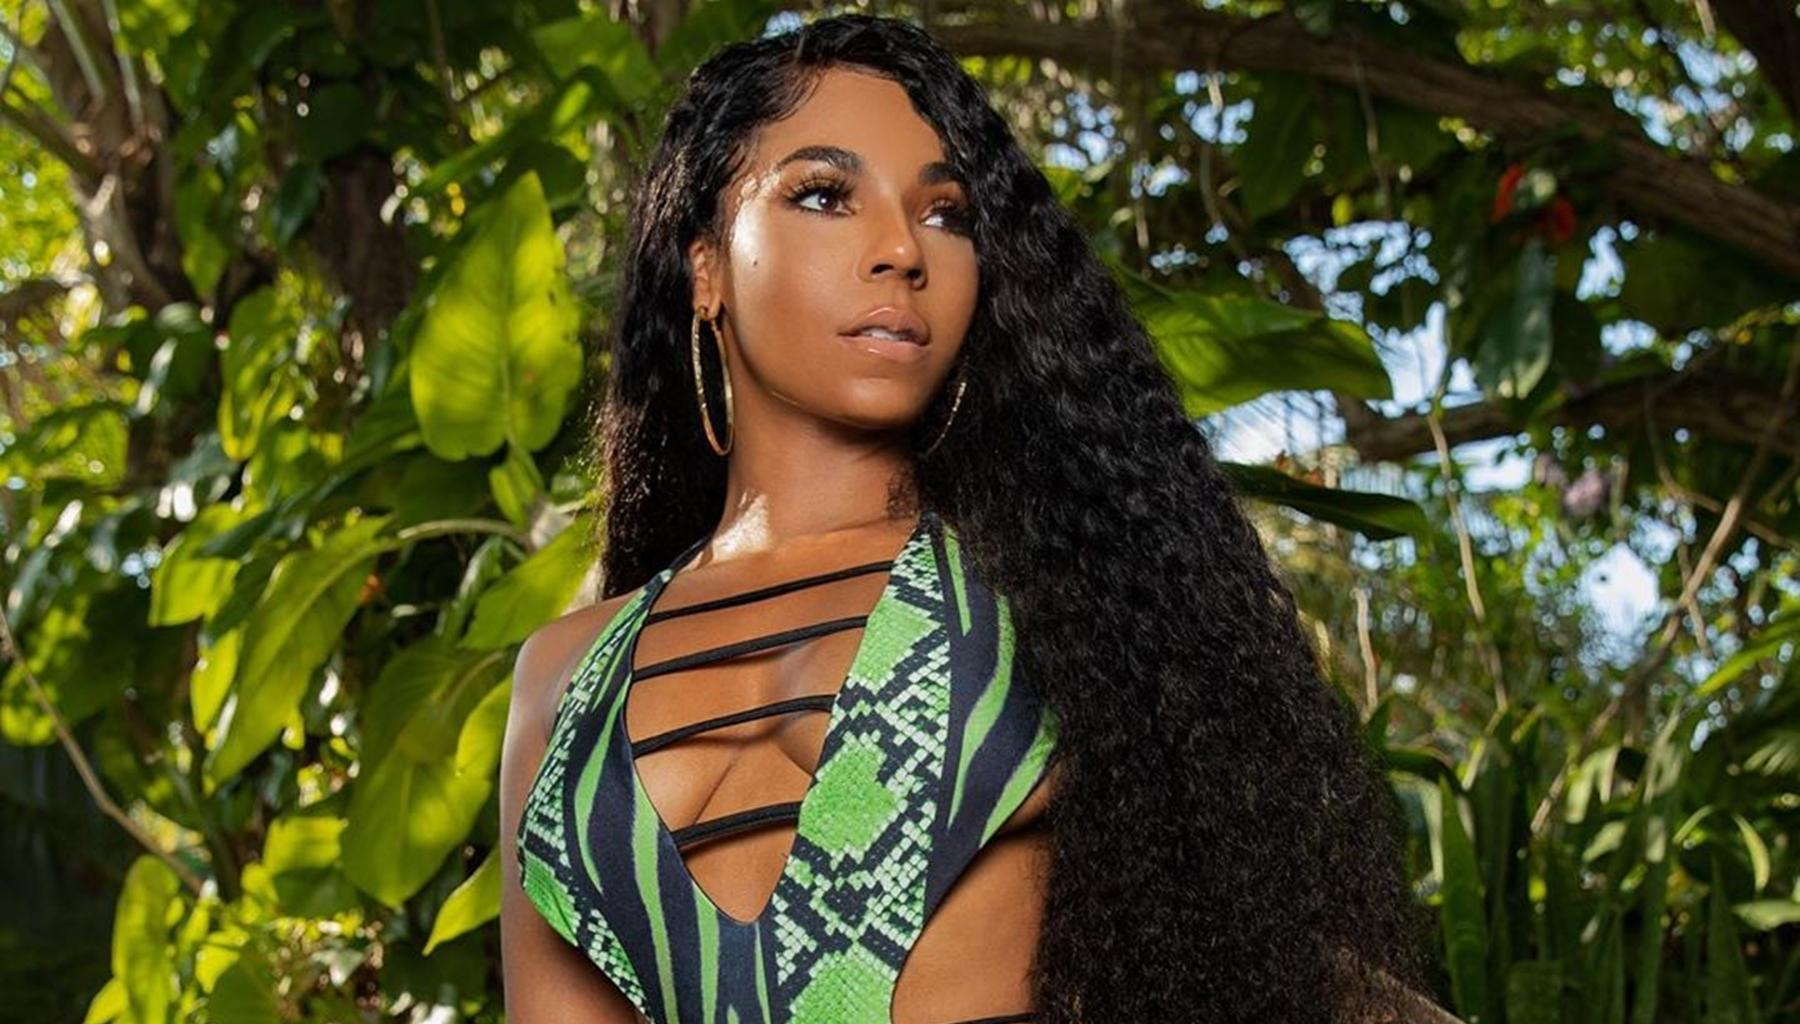 Ashanti Looks Like A Teenager In Photo Without Makeup, She Gave Her Secret To Looking So Fabulous